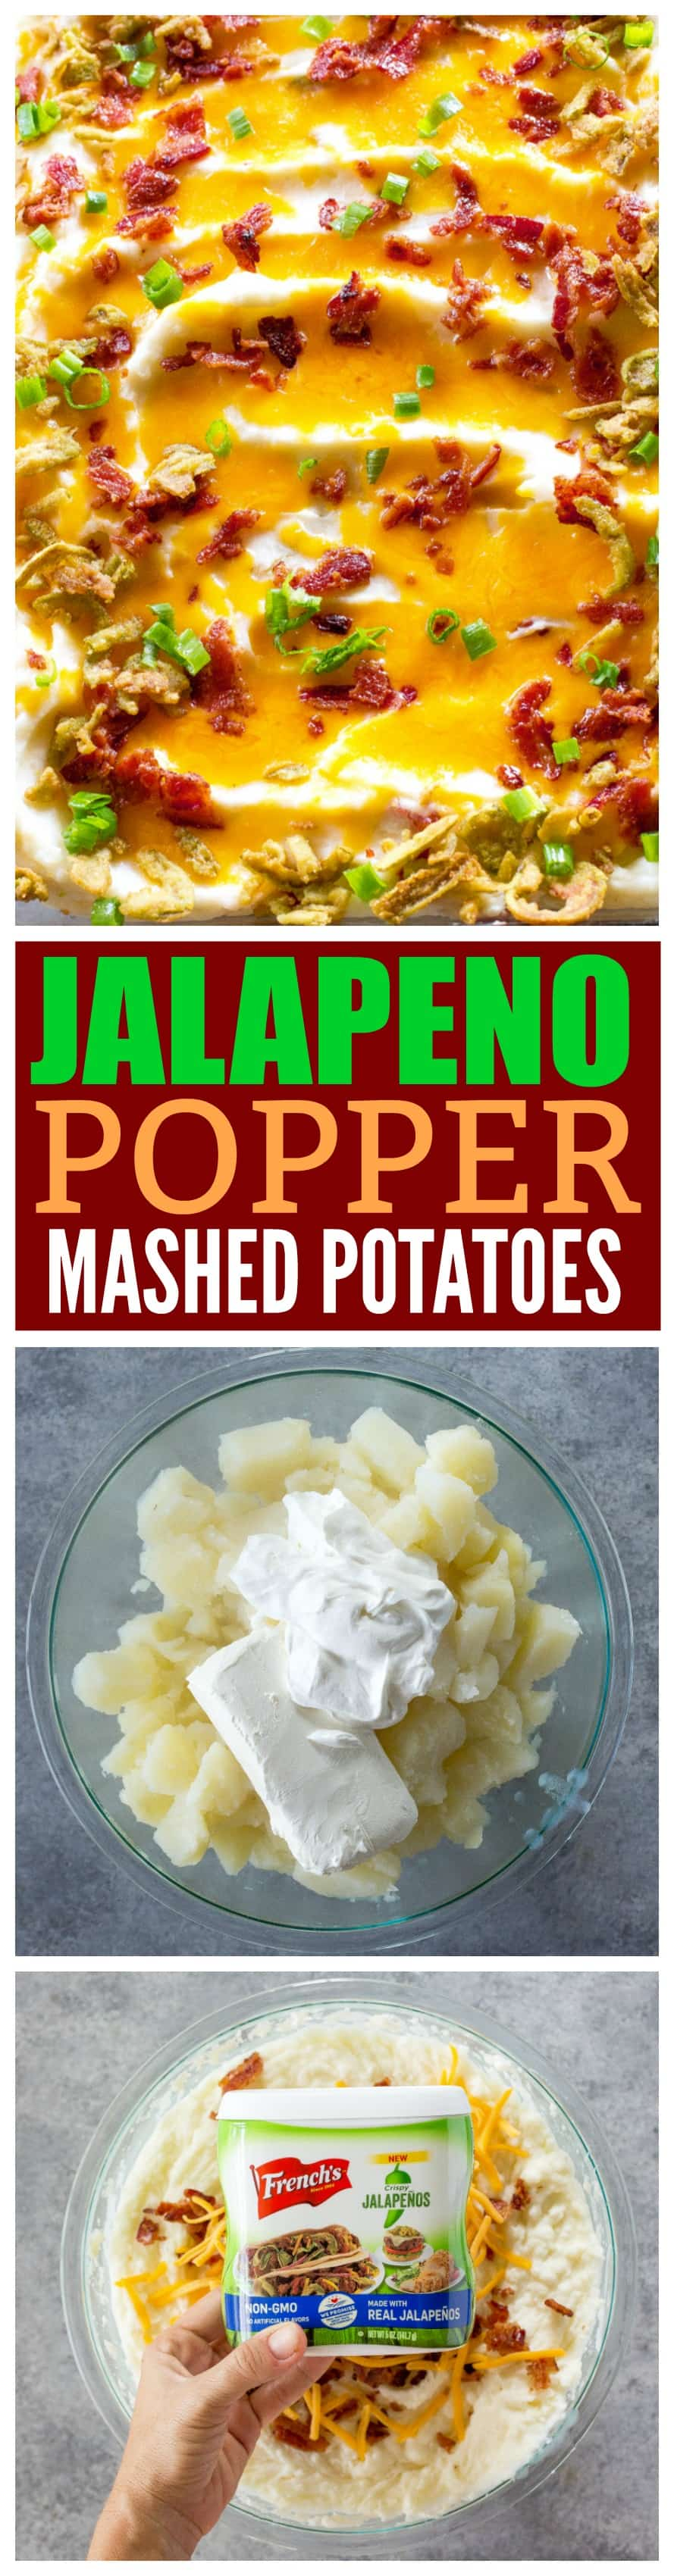 These Jalapeno Popper Mashed Potatoes are the perfect side for the Ultimate Friendsgiving. #ad #thanksgiving @French's